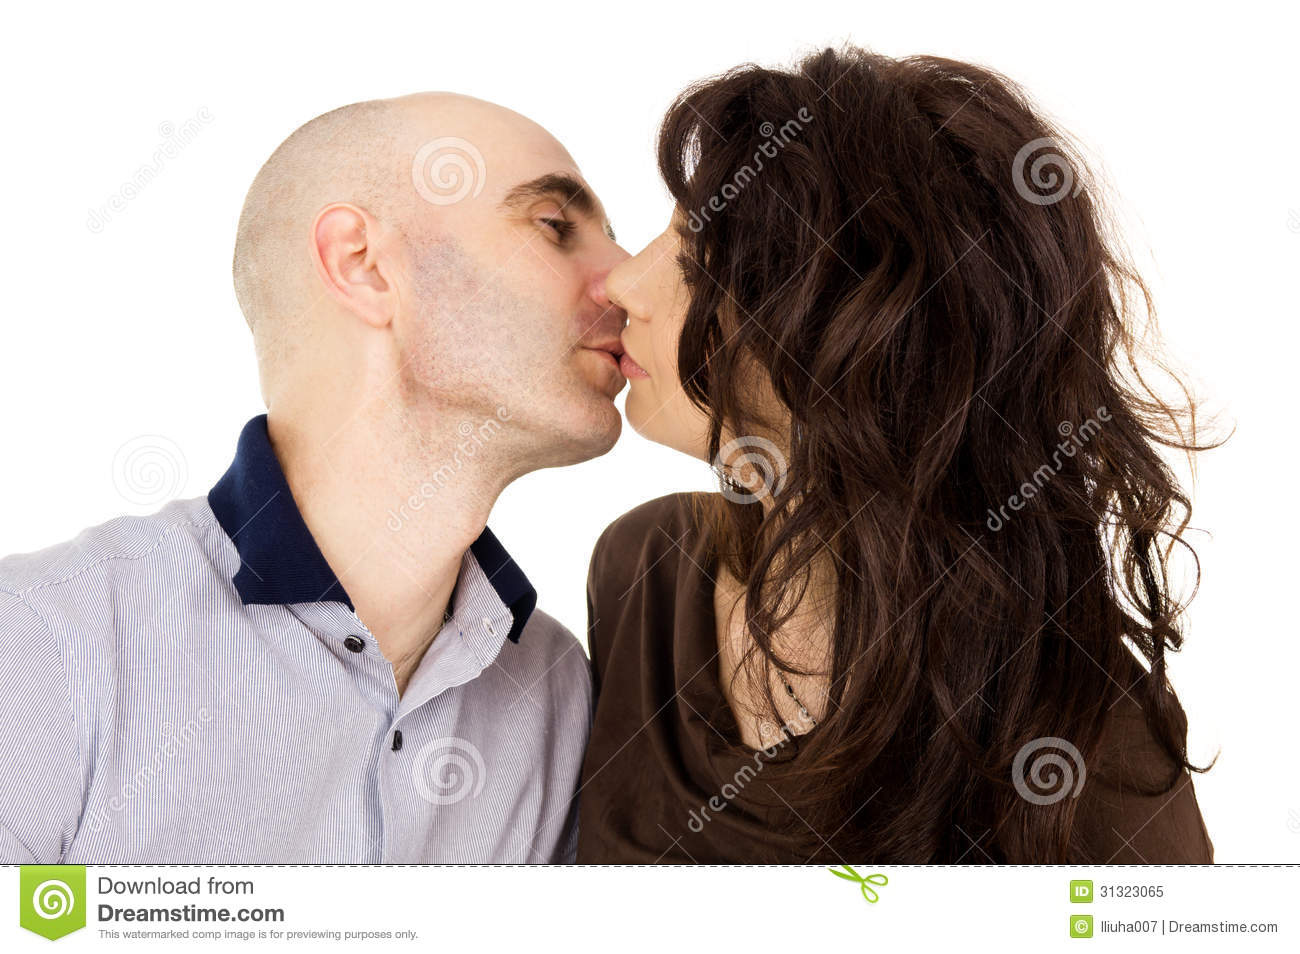 Royalty Free Stock Photo  Portrait of a husband and wife kiss isolatedPortrait Of A Husband And Wife